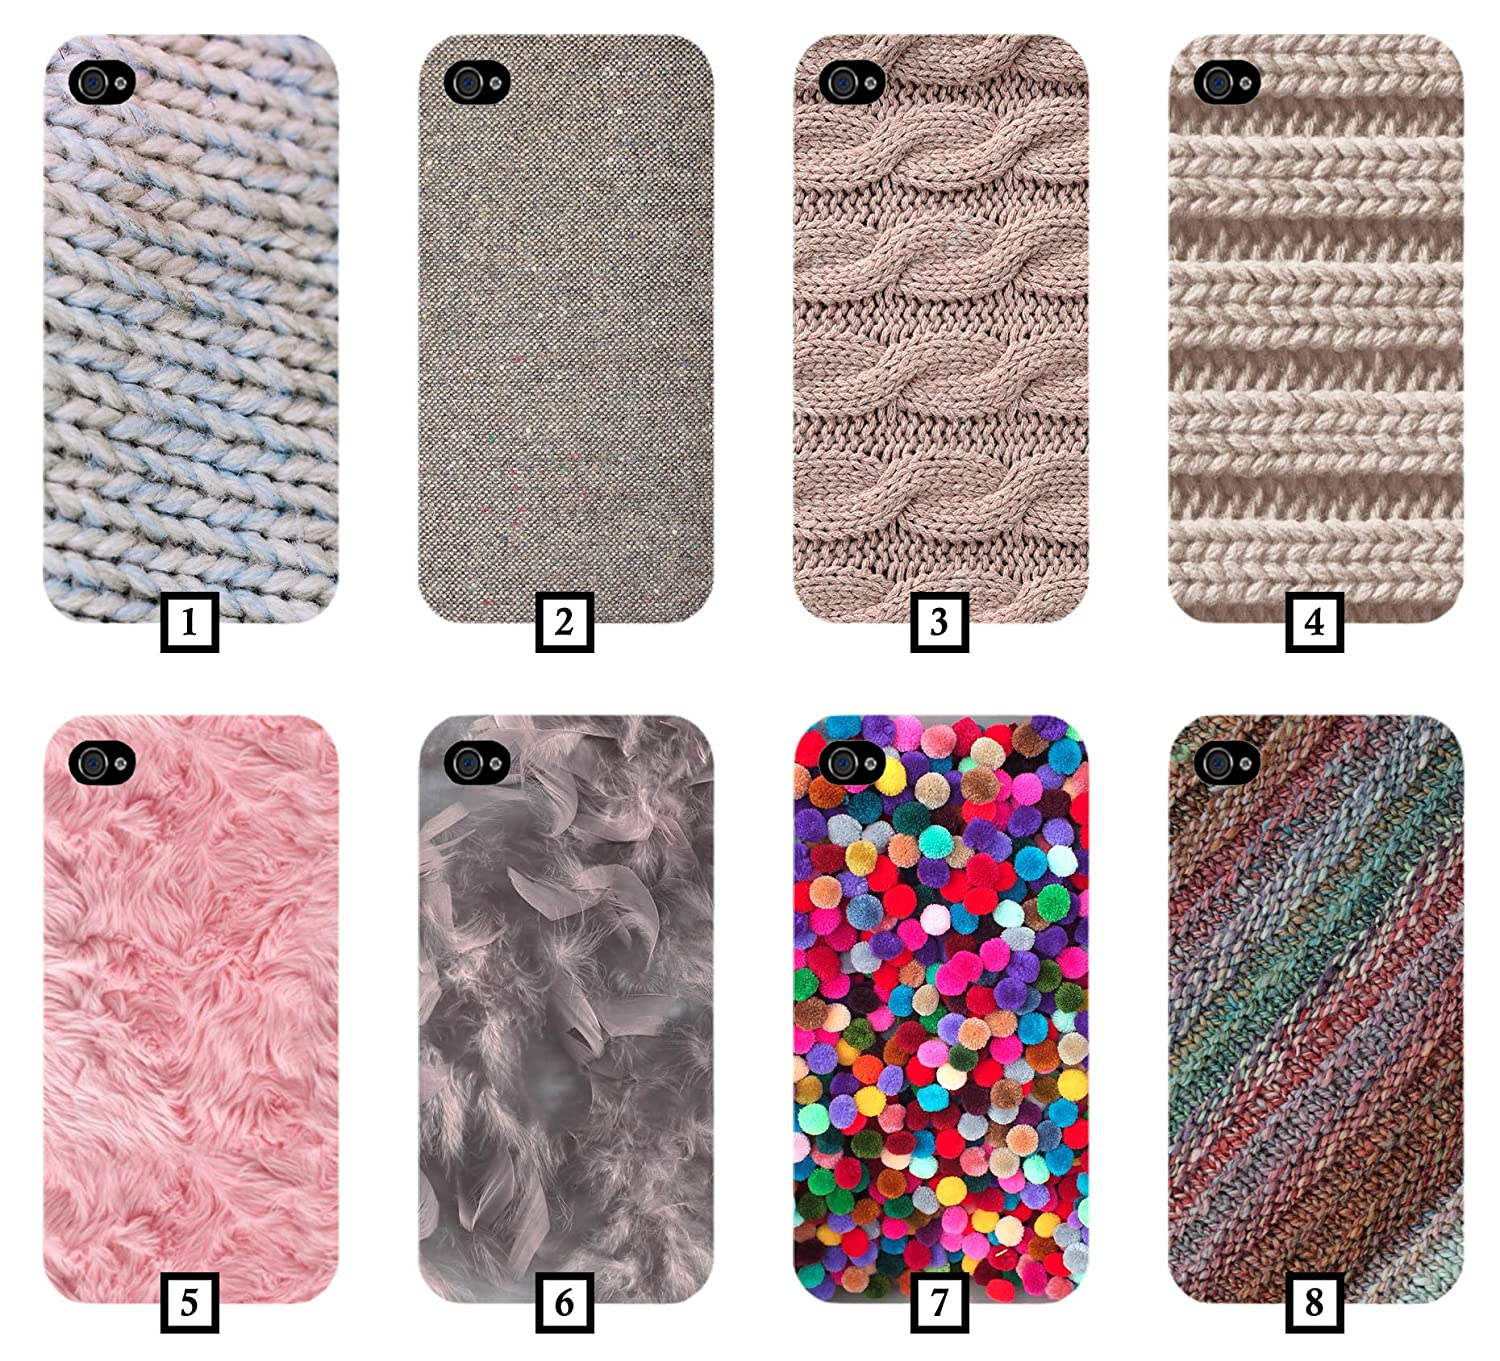 Wool Phone Case Cover Knitting Pom Pom Poms Fur Pink Feathers Cotton Novelty iPhone Samsung Galaxy Google Pixel Huawei LG Sony Xperia OnePlus HTC Nokia 2 3 4 5 6 7 8 9 10 11 XL Plus PC135